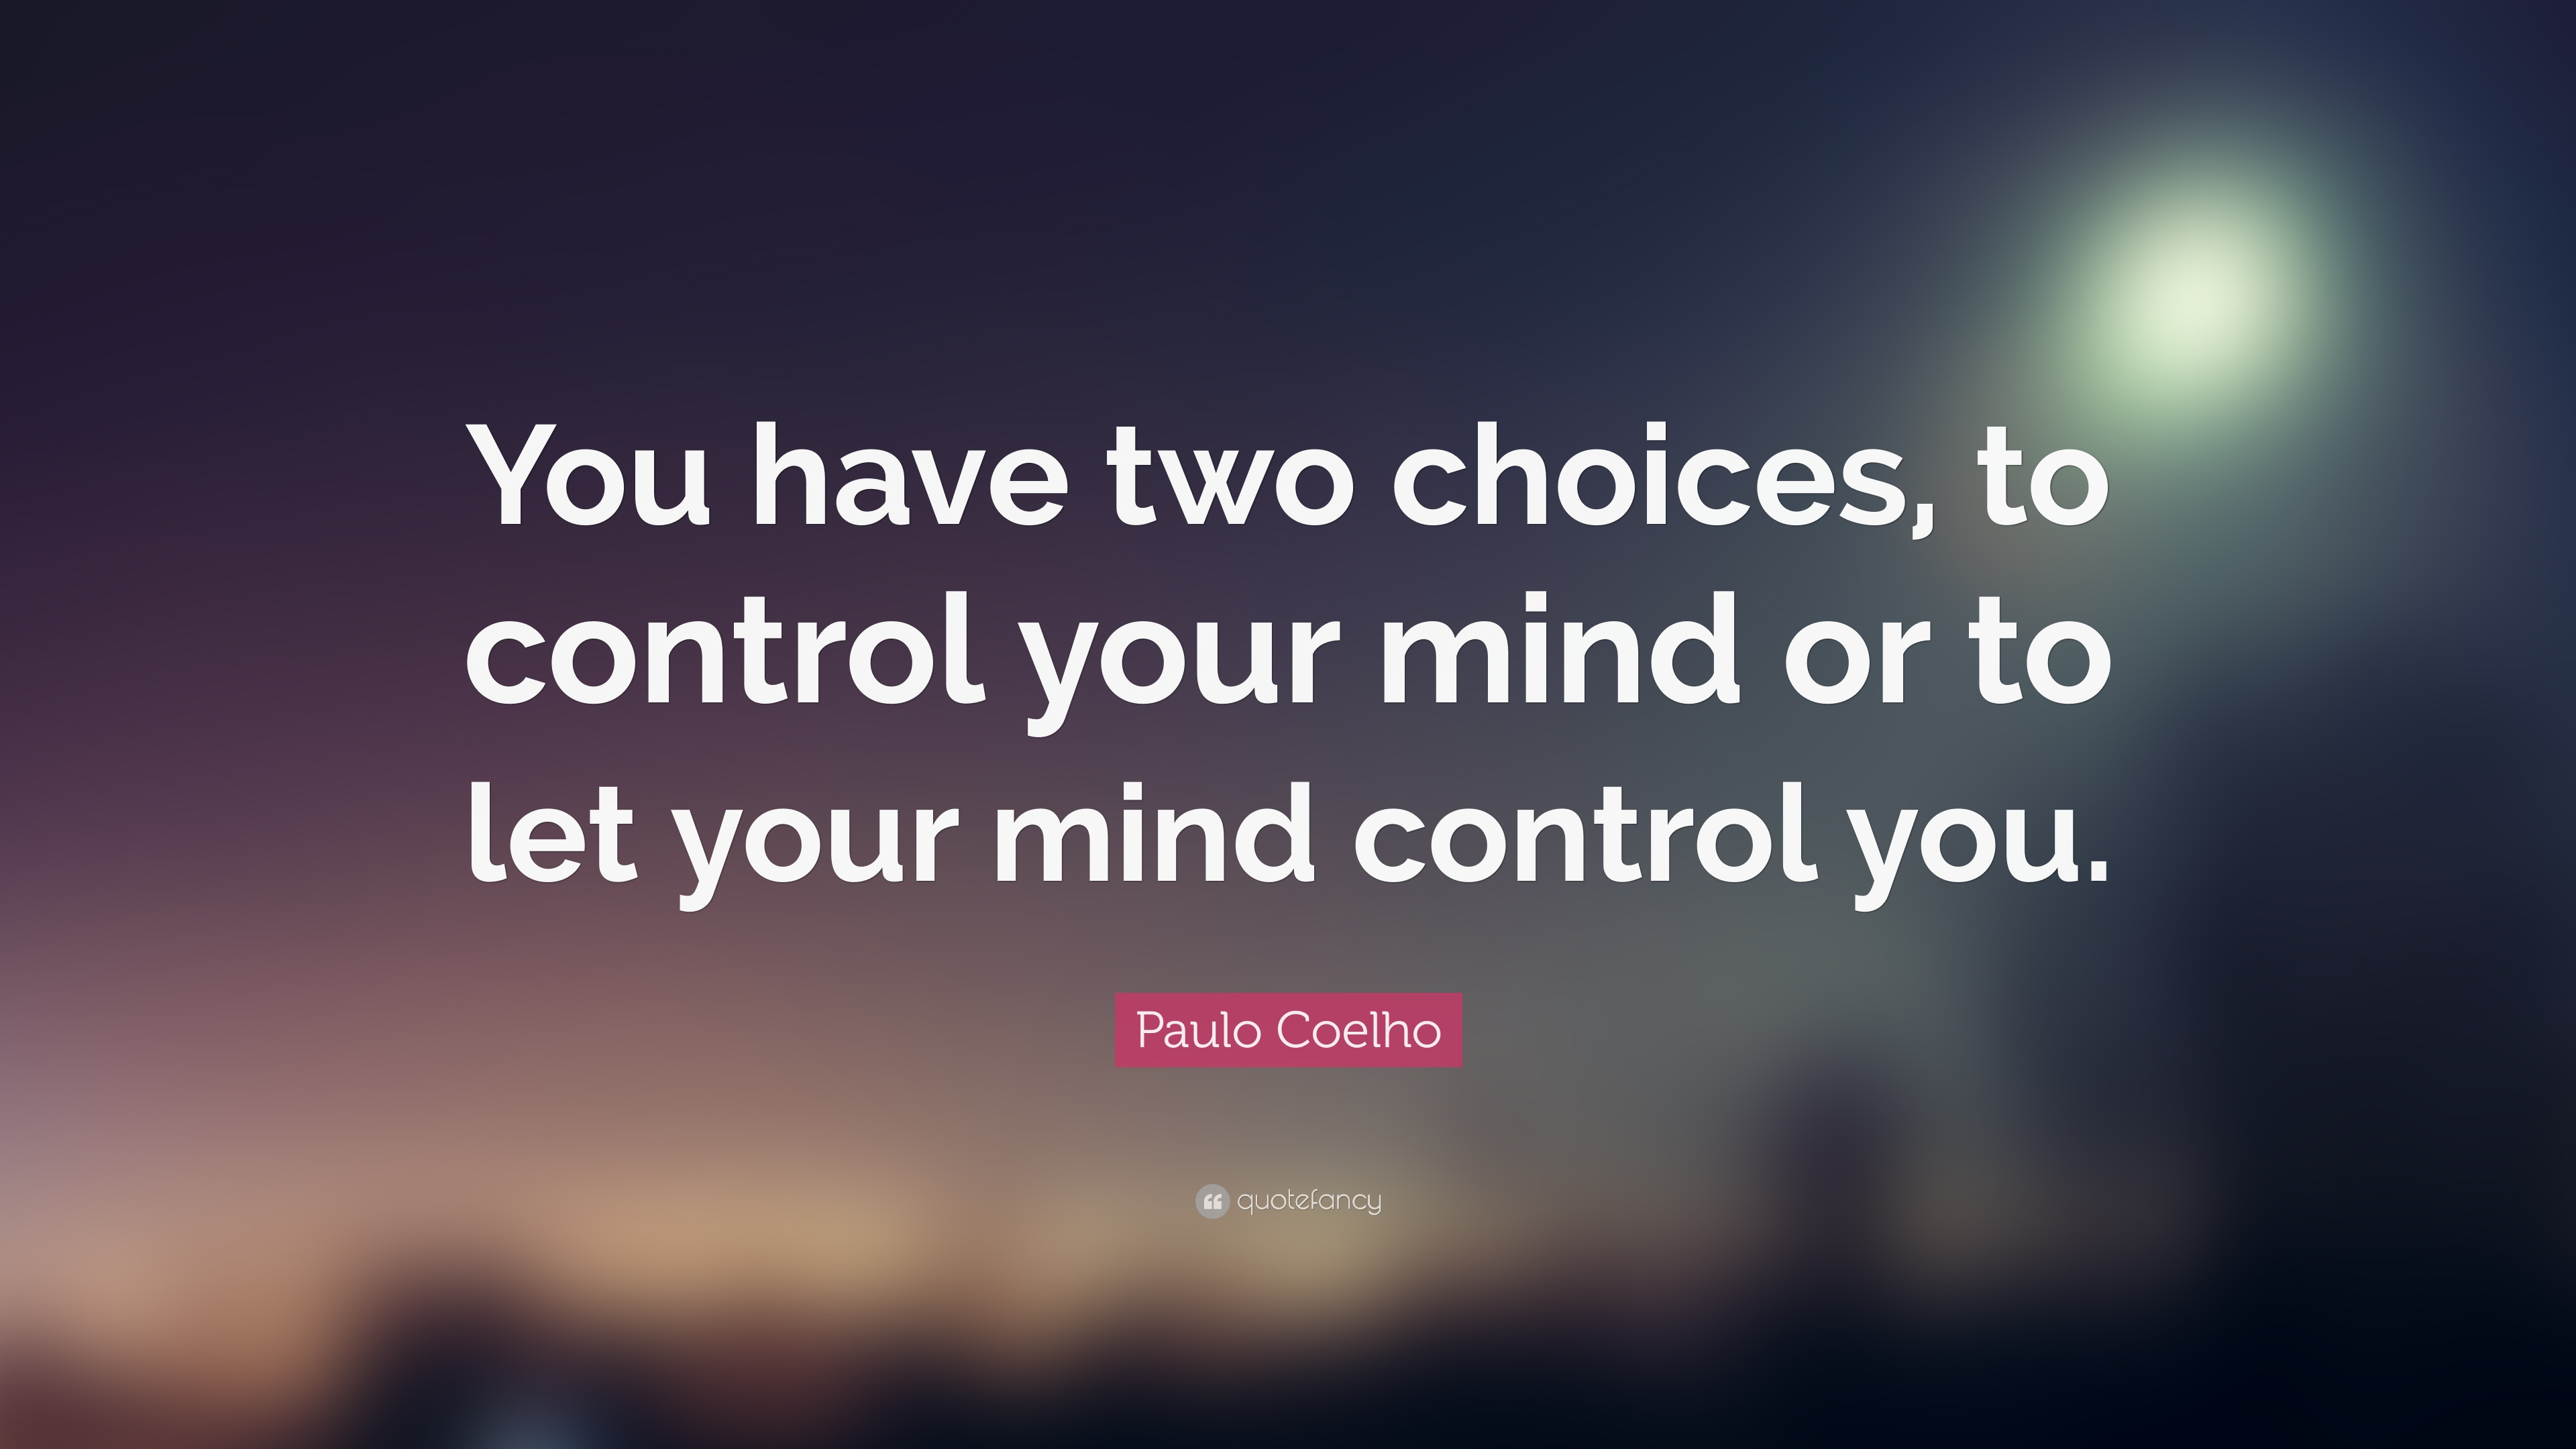 How to Control Your Mind How to Control Your Mind new images